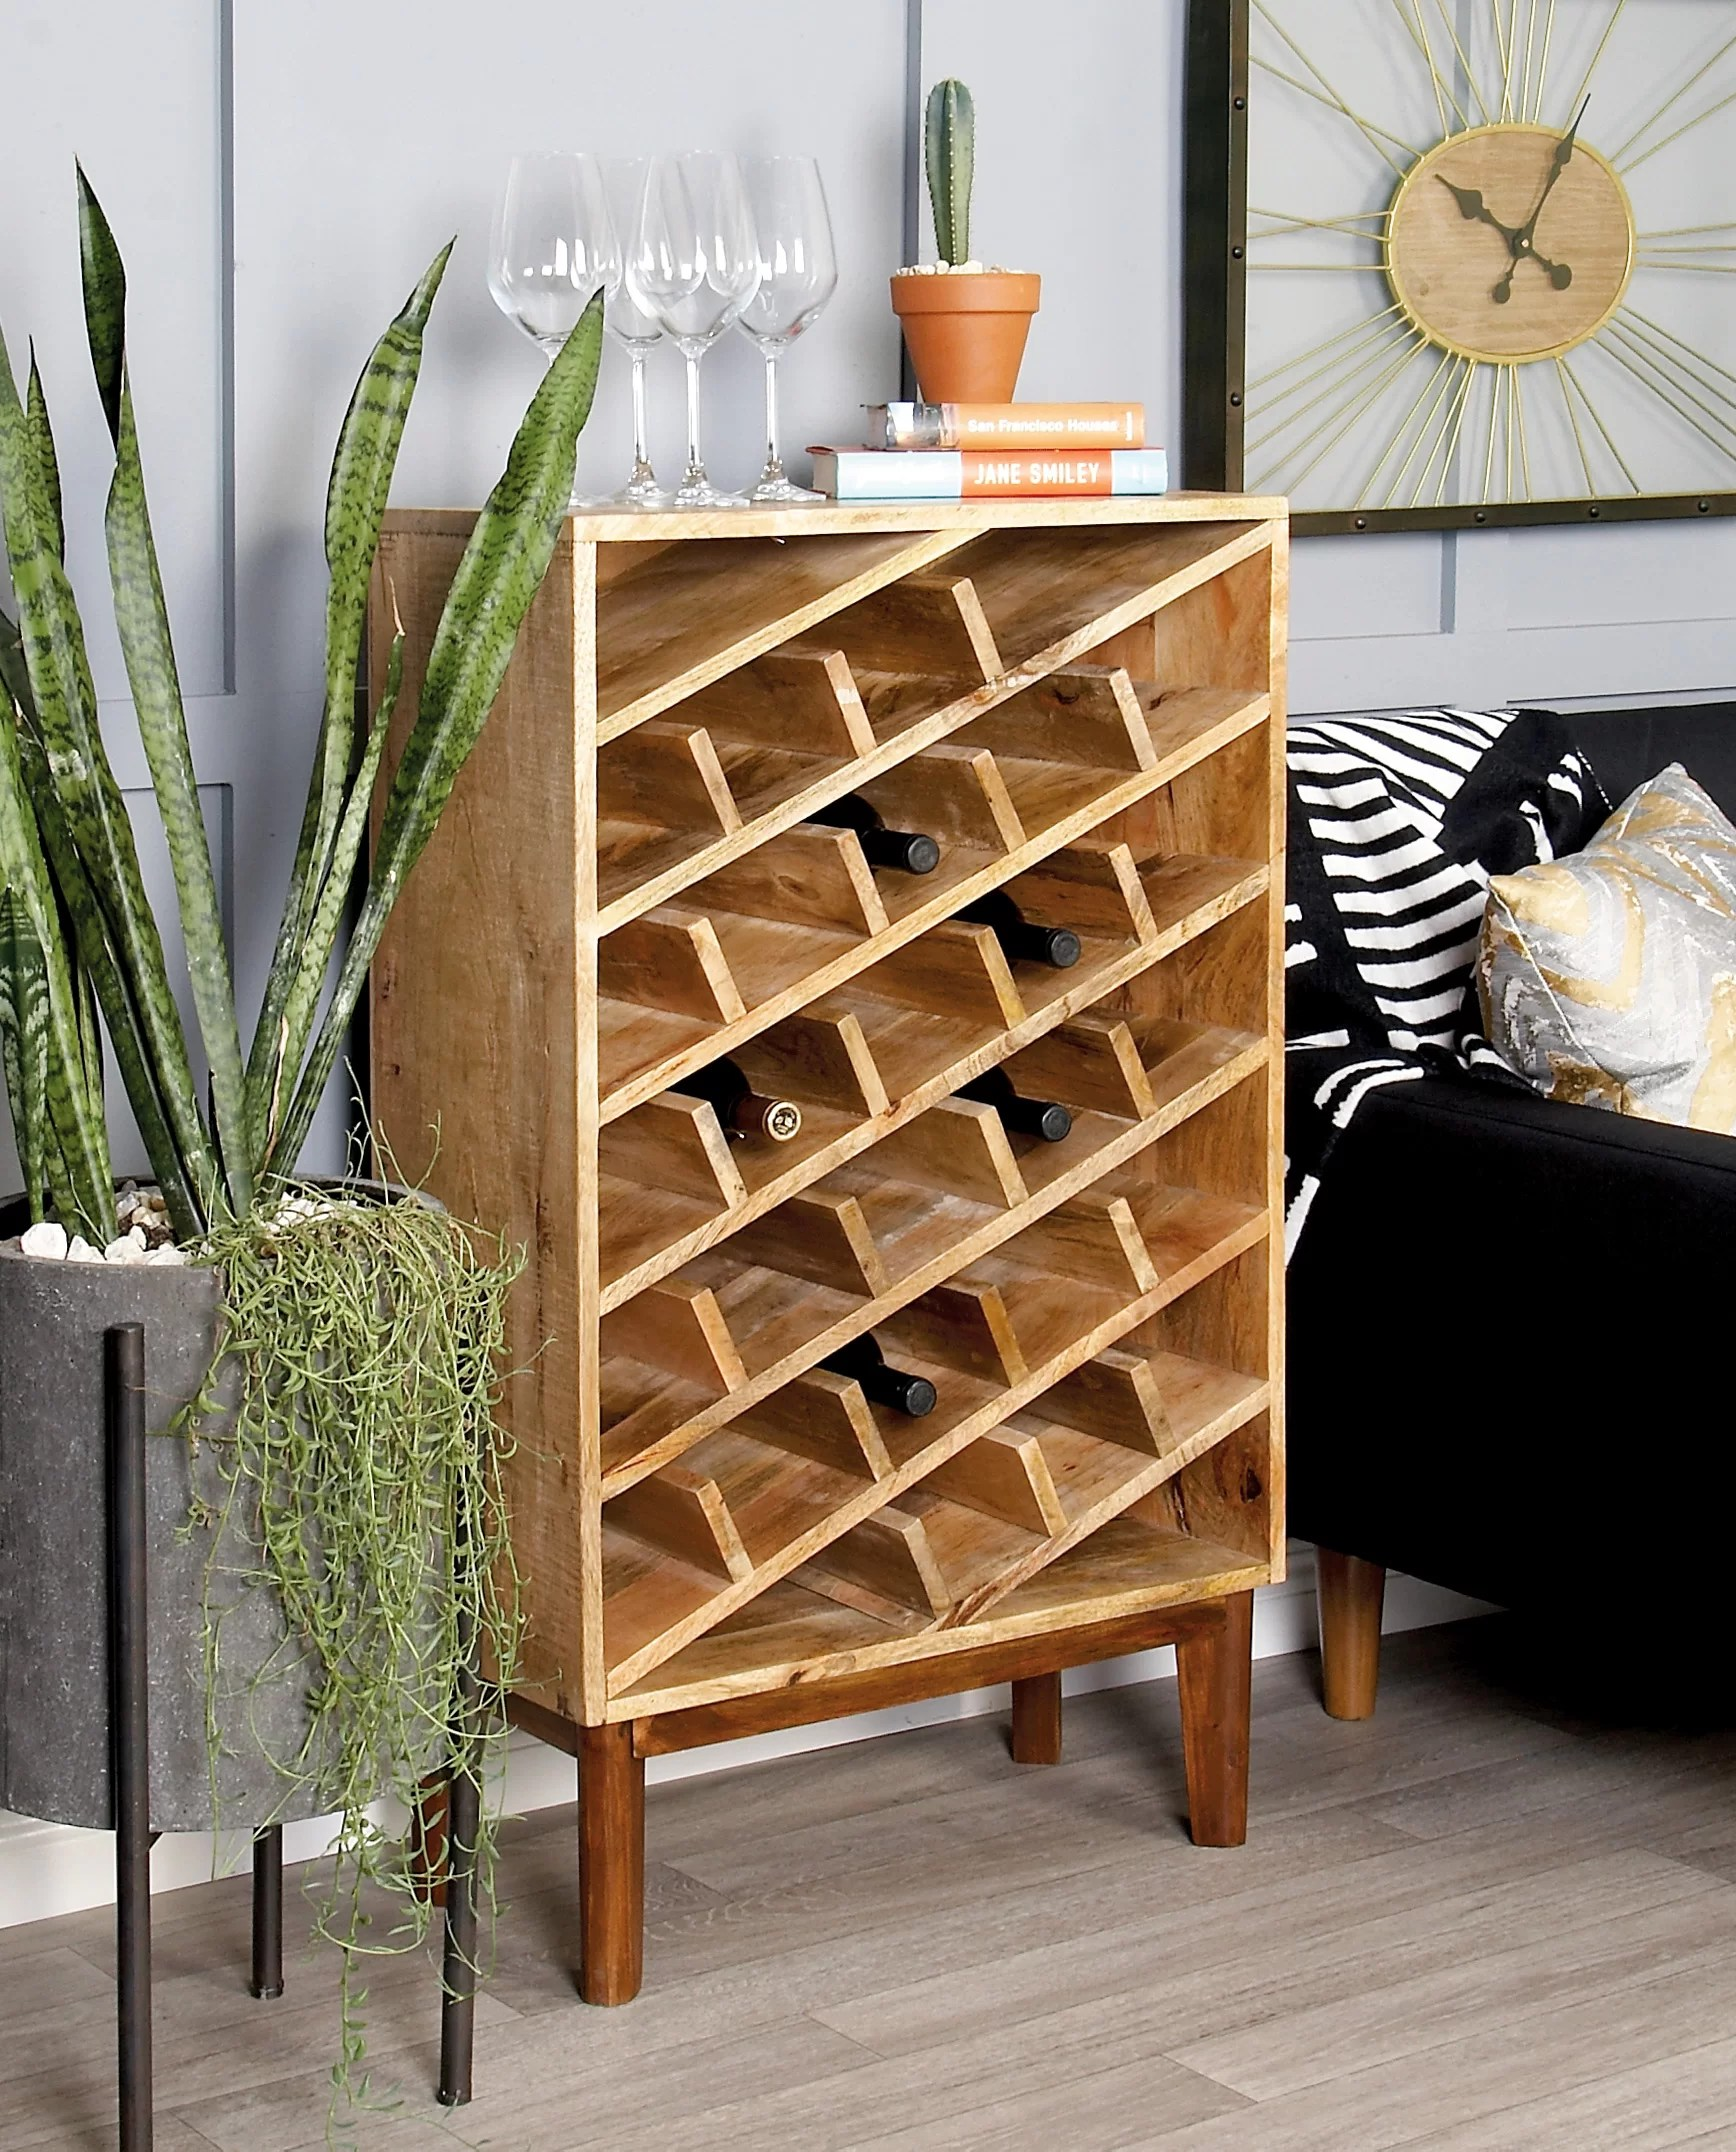 Wooden Bottle Rack Wood 24 Bottle Floor Wine Bottle Rack